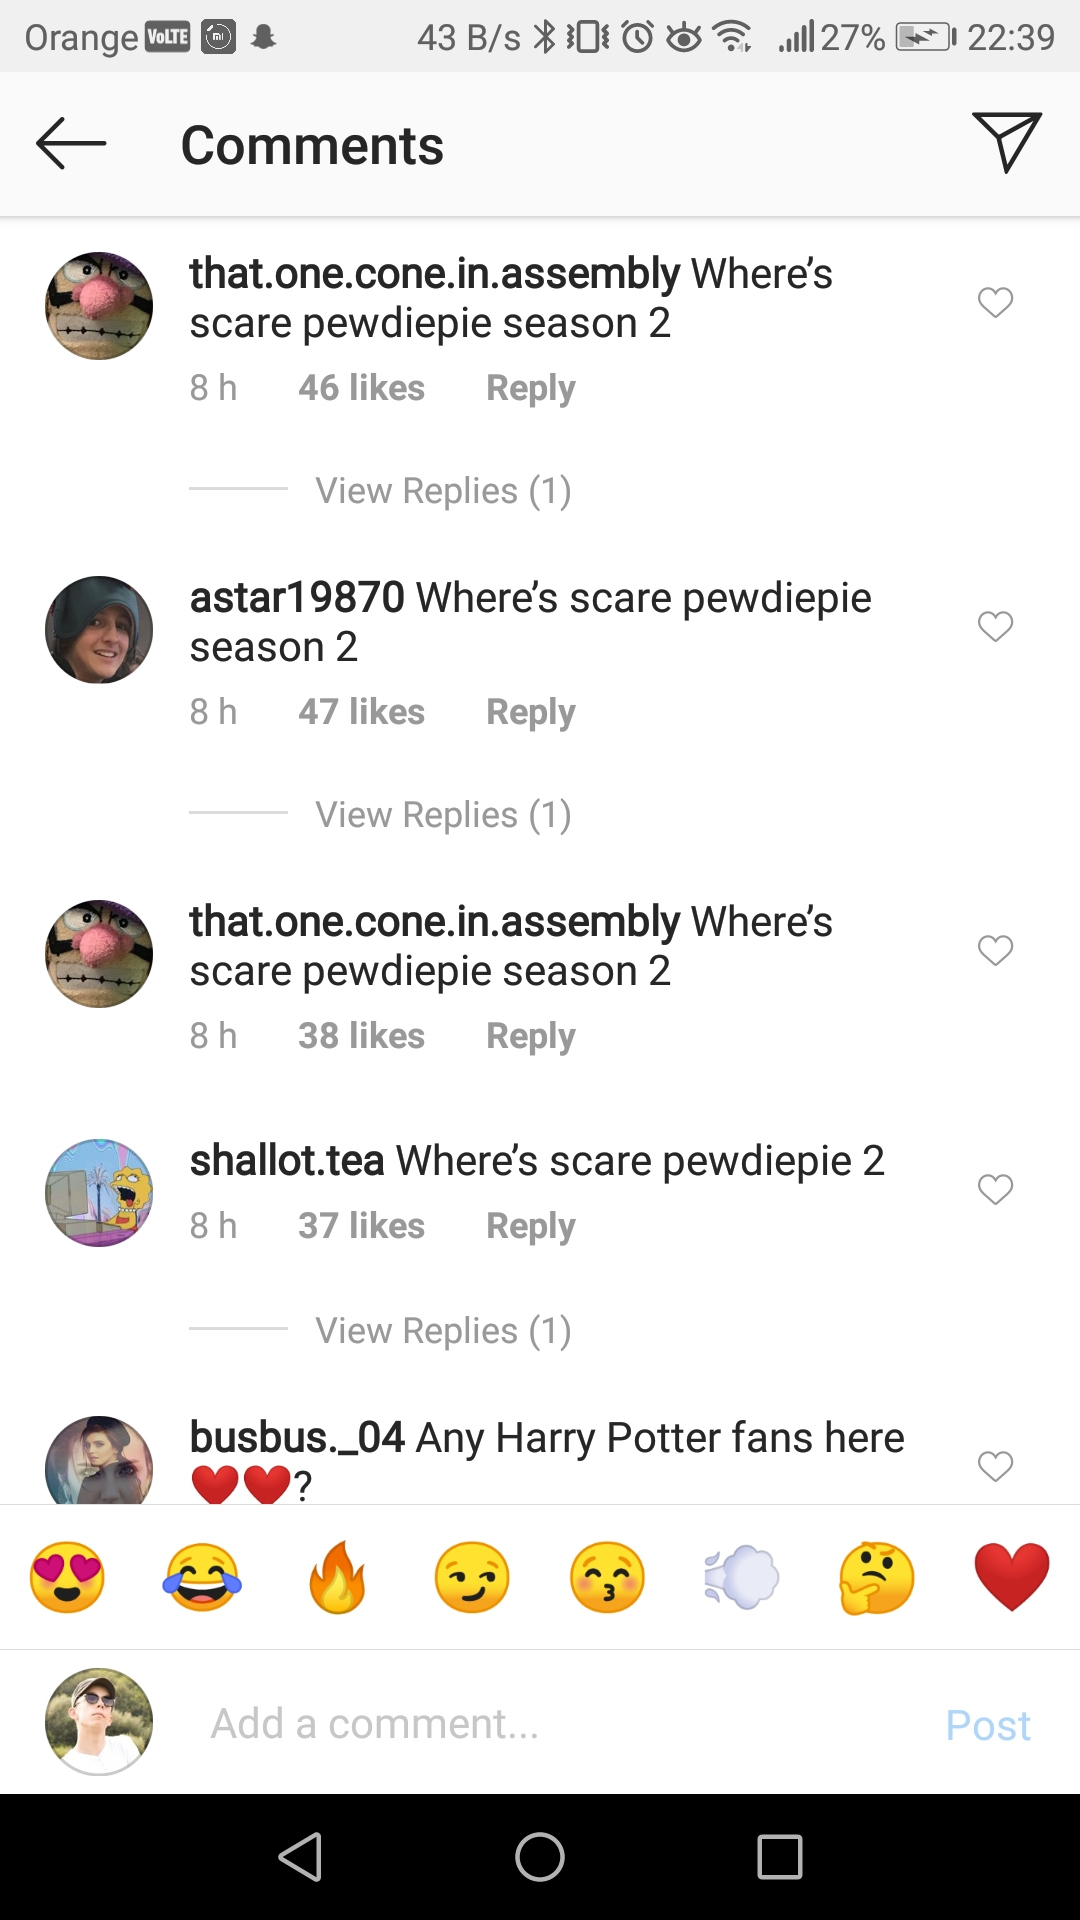 comments about pewdiepie on IG post example